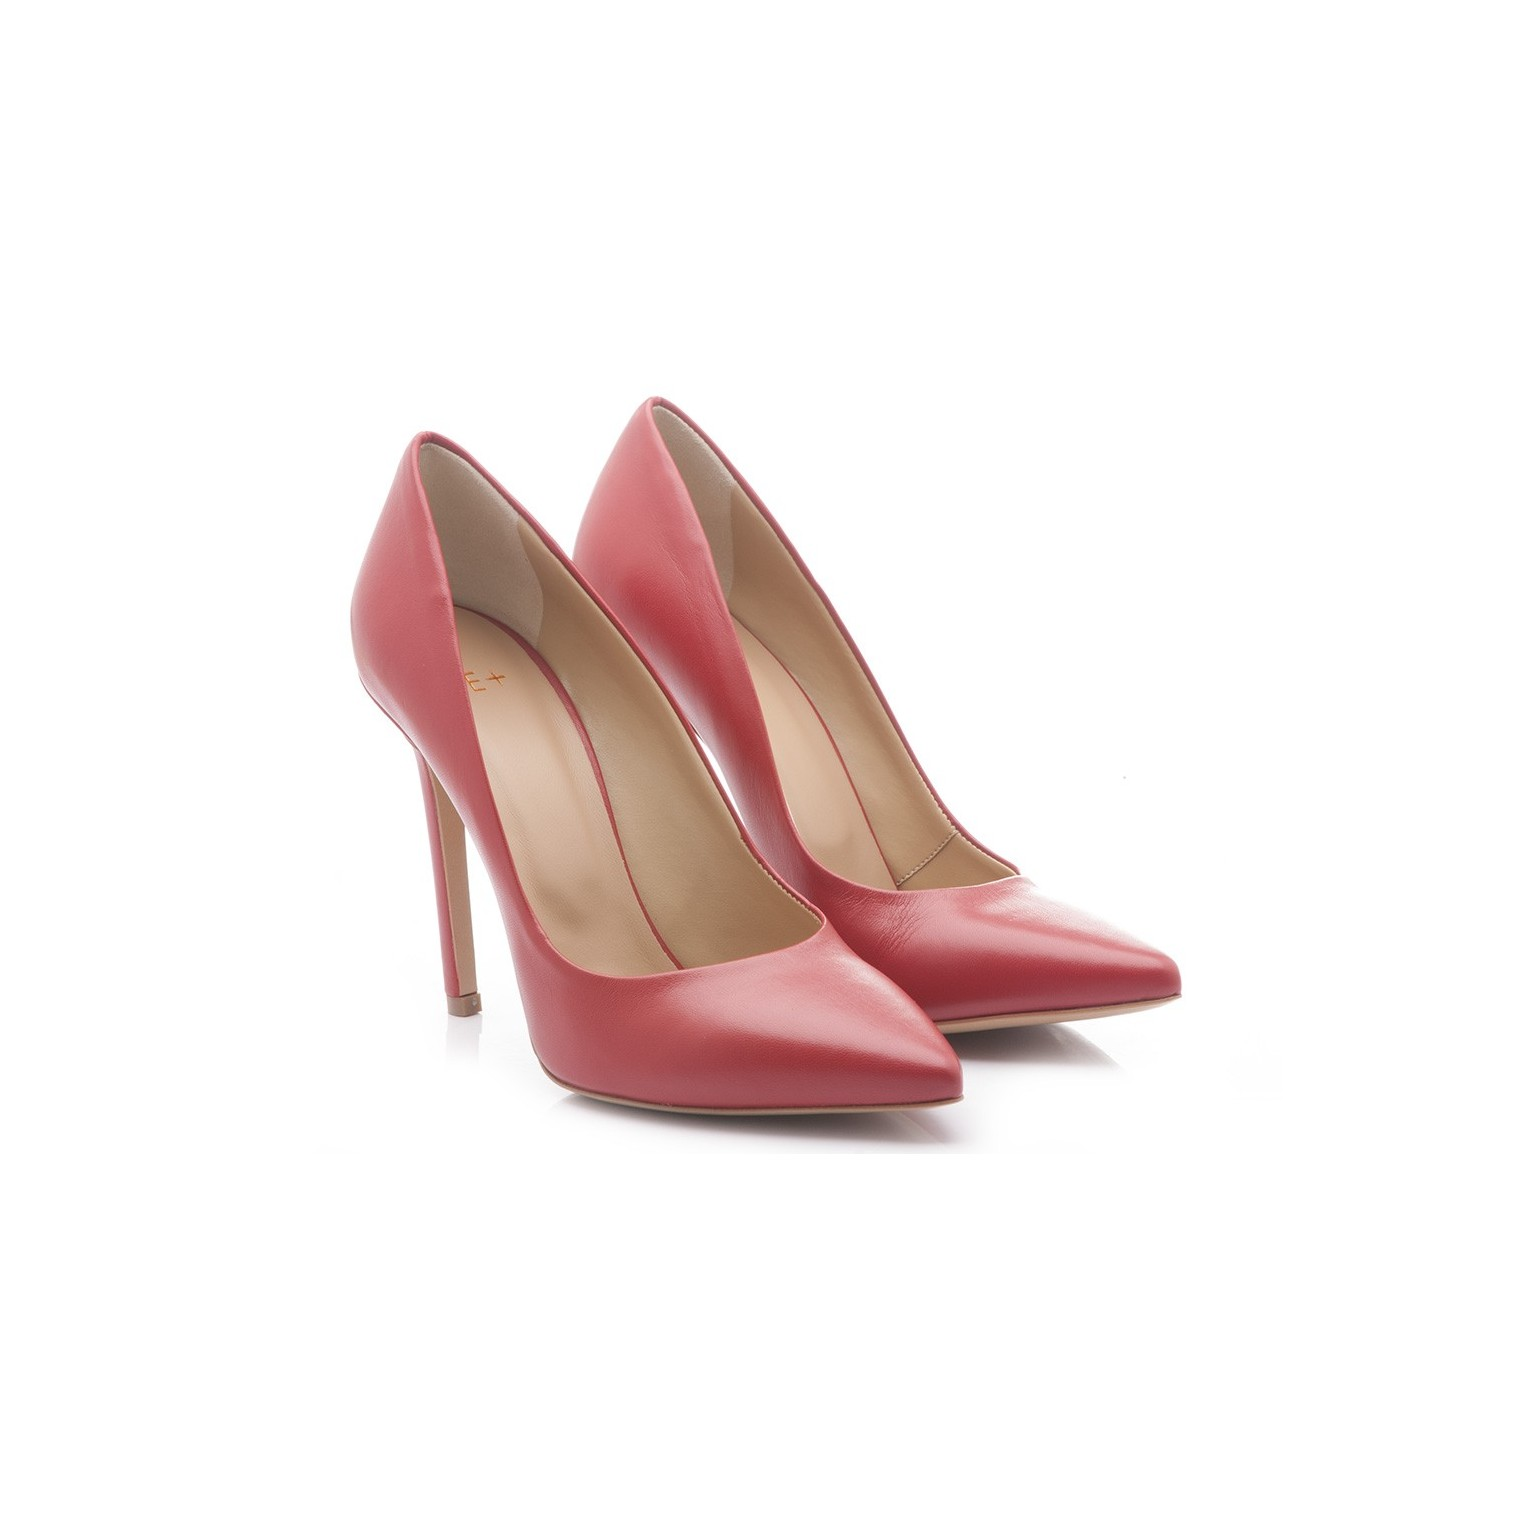 ME+ Women's Shoes Decolletè High Heels Leather Red JH019